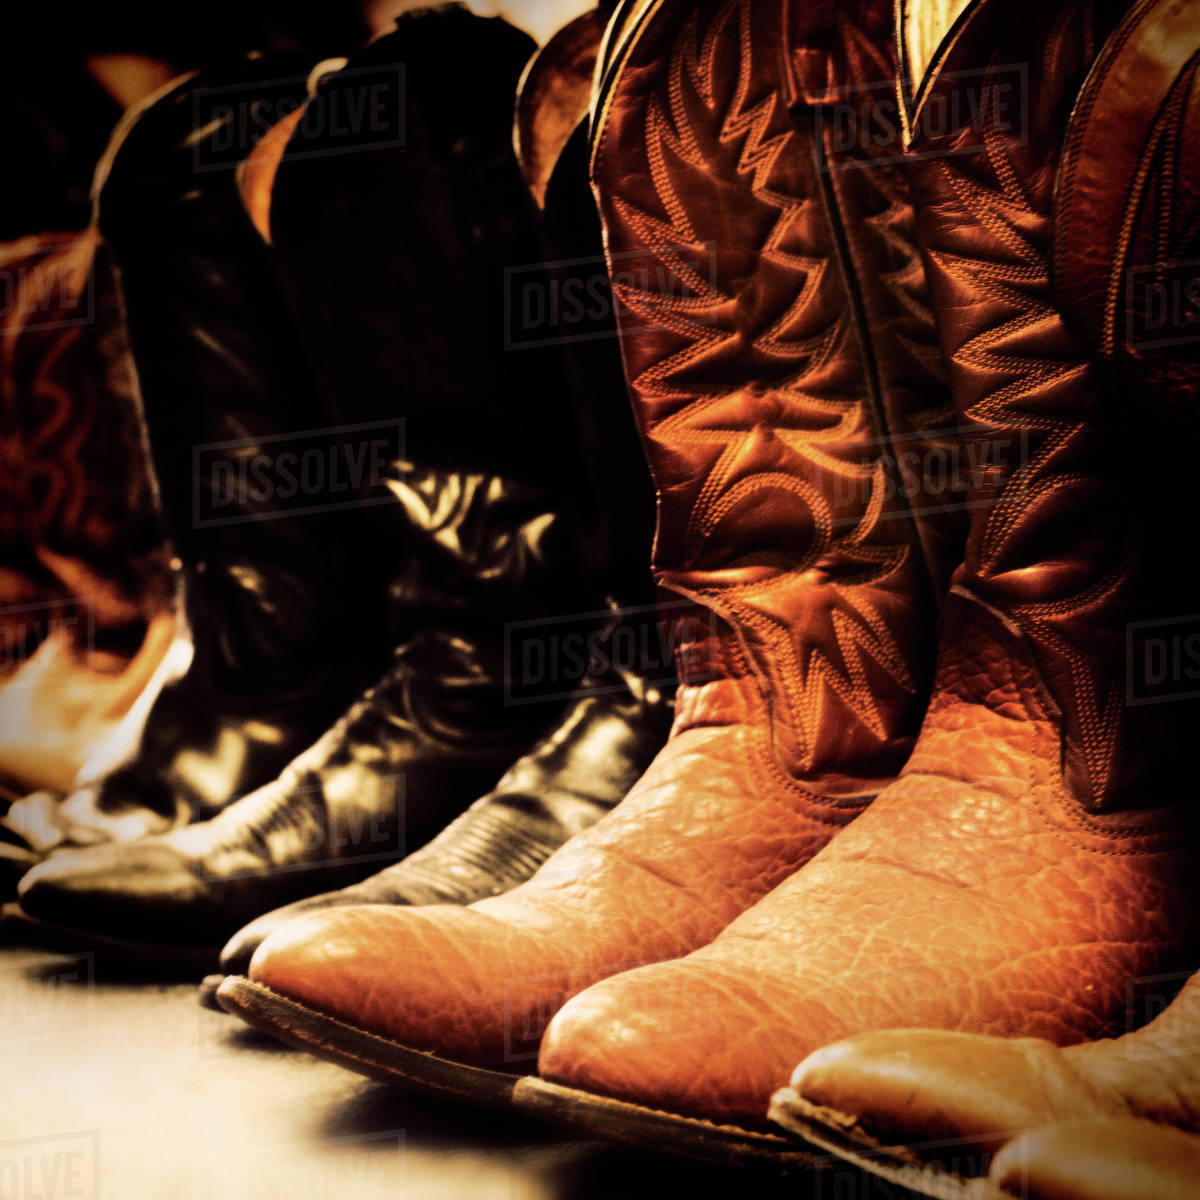 92525c1cba8 Row of cowboy boots - Stock Photo - Dissolve